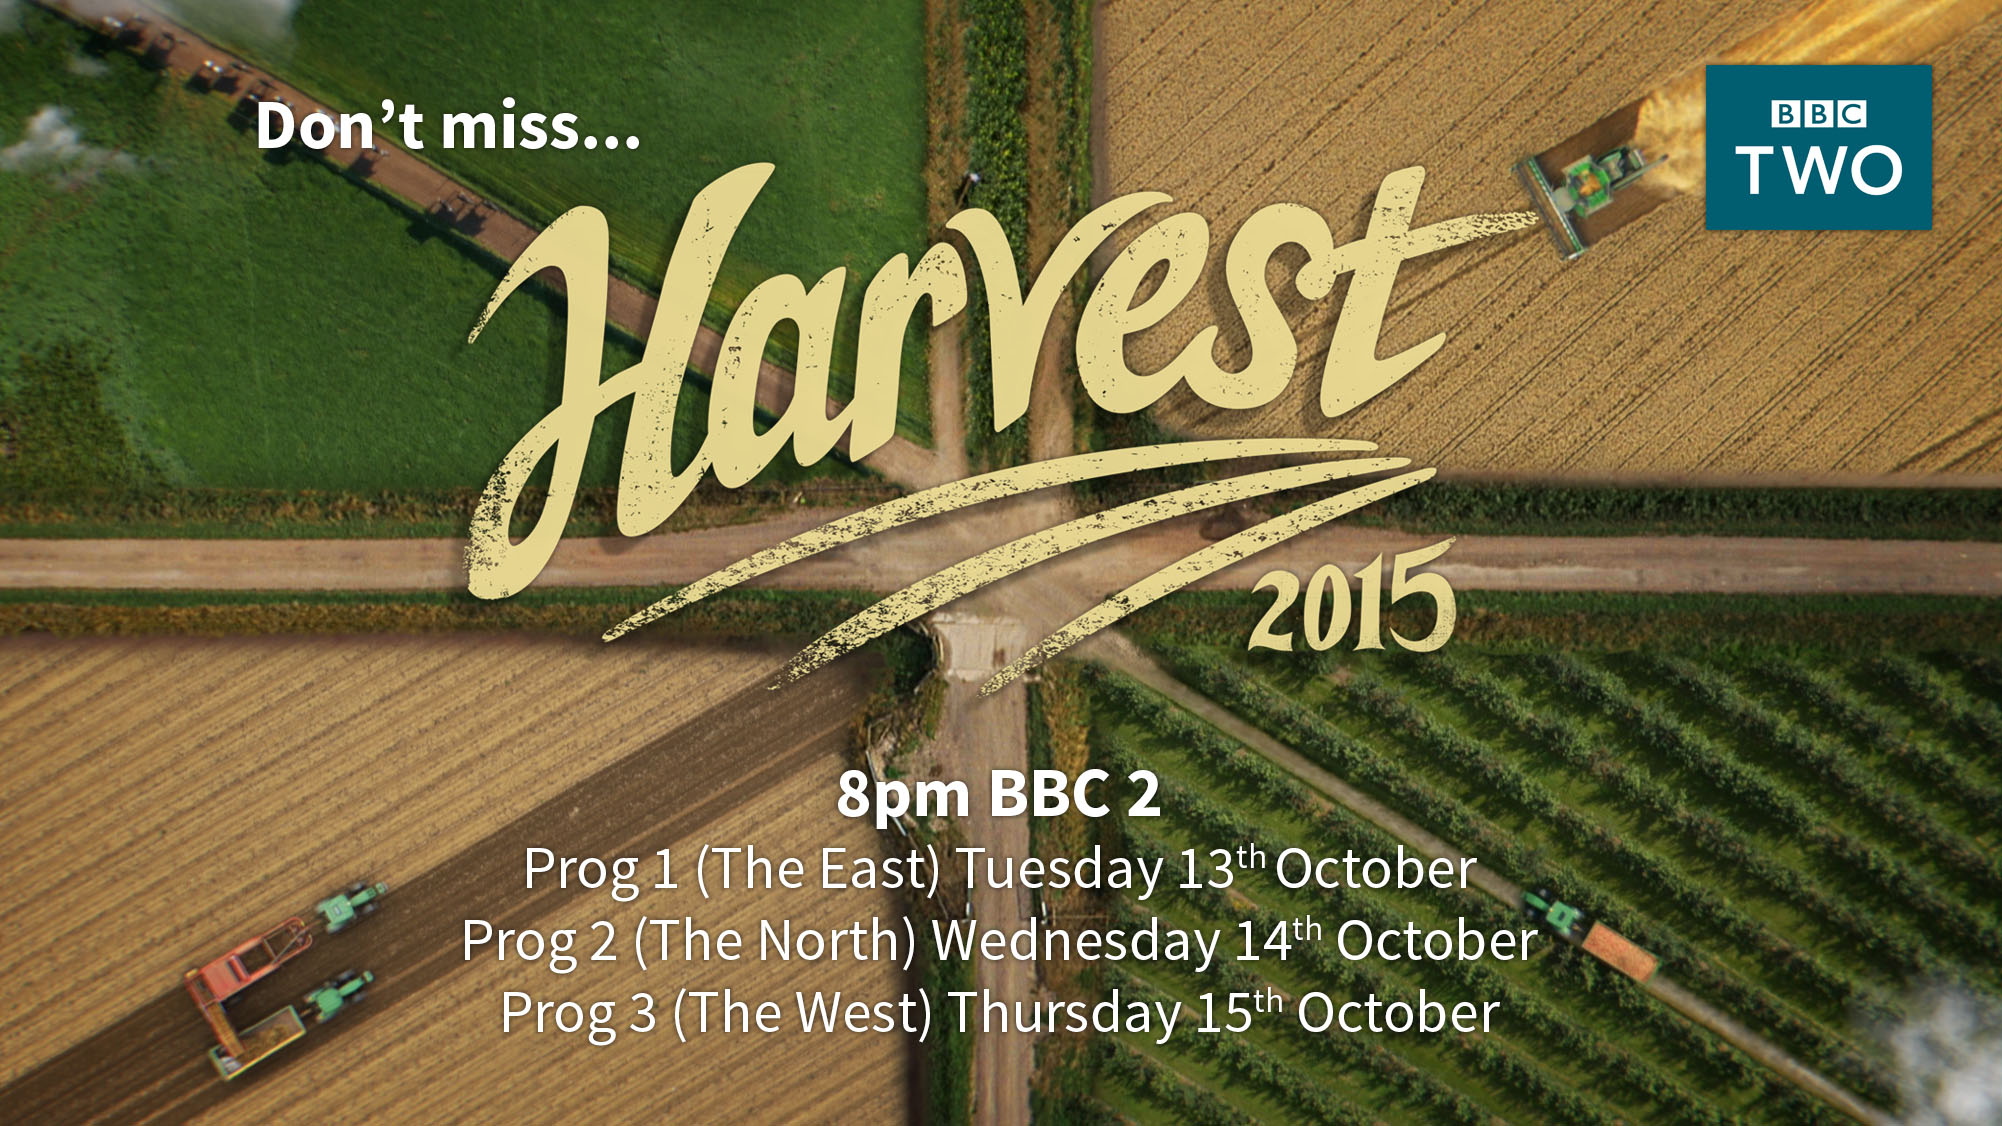 BBC Harvest 2015 - We appeared on the BBC Harvest 2015 TV programme. If you'd like to see how we got on and what we do here at Easter Rhynd then..... CLICK HERE